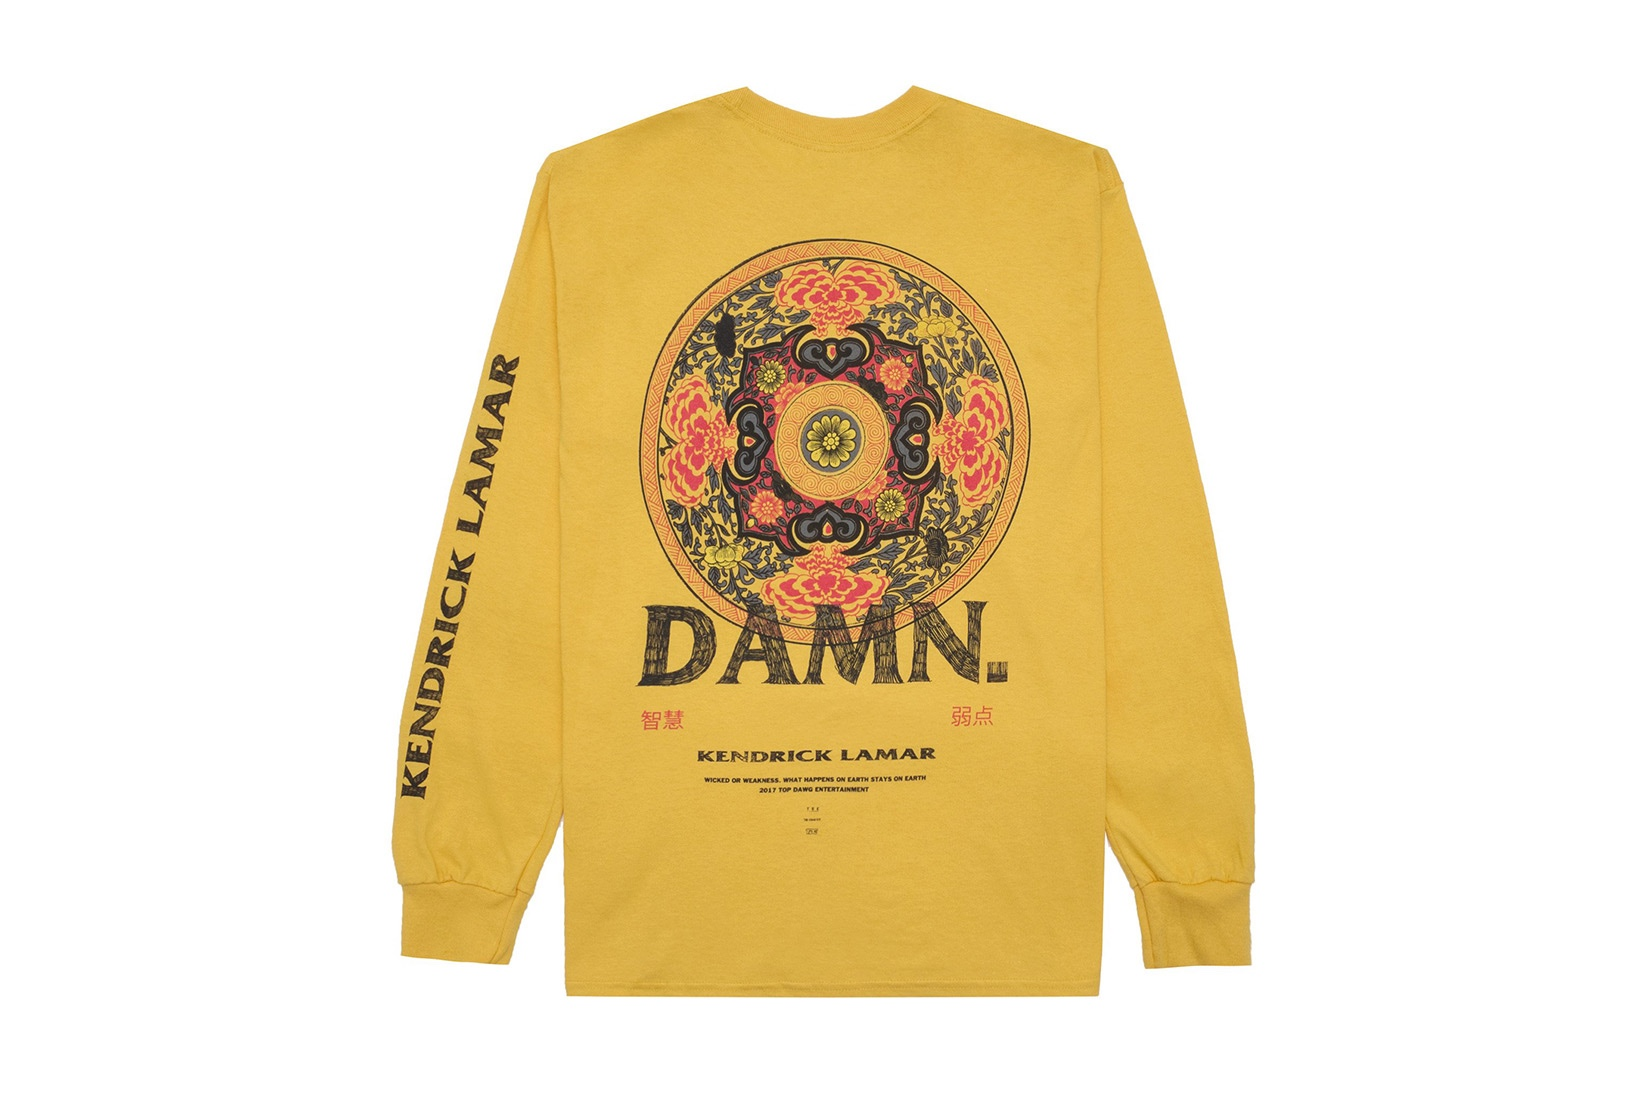 kendrick-lamar-additional-damn-merch-3